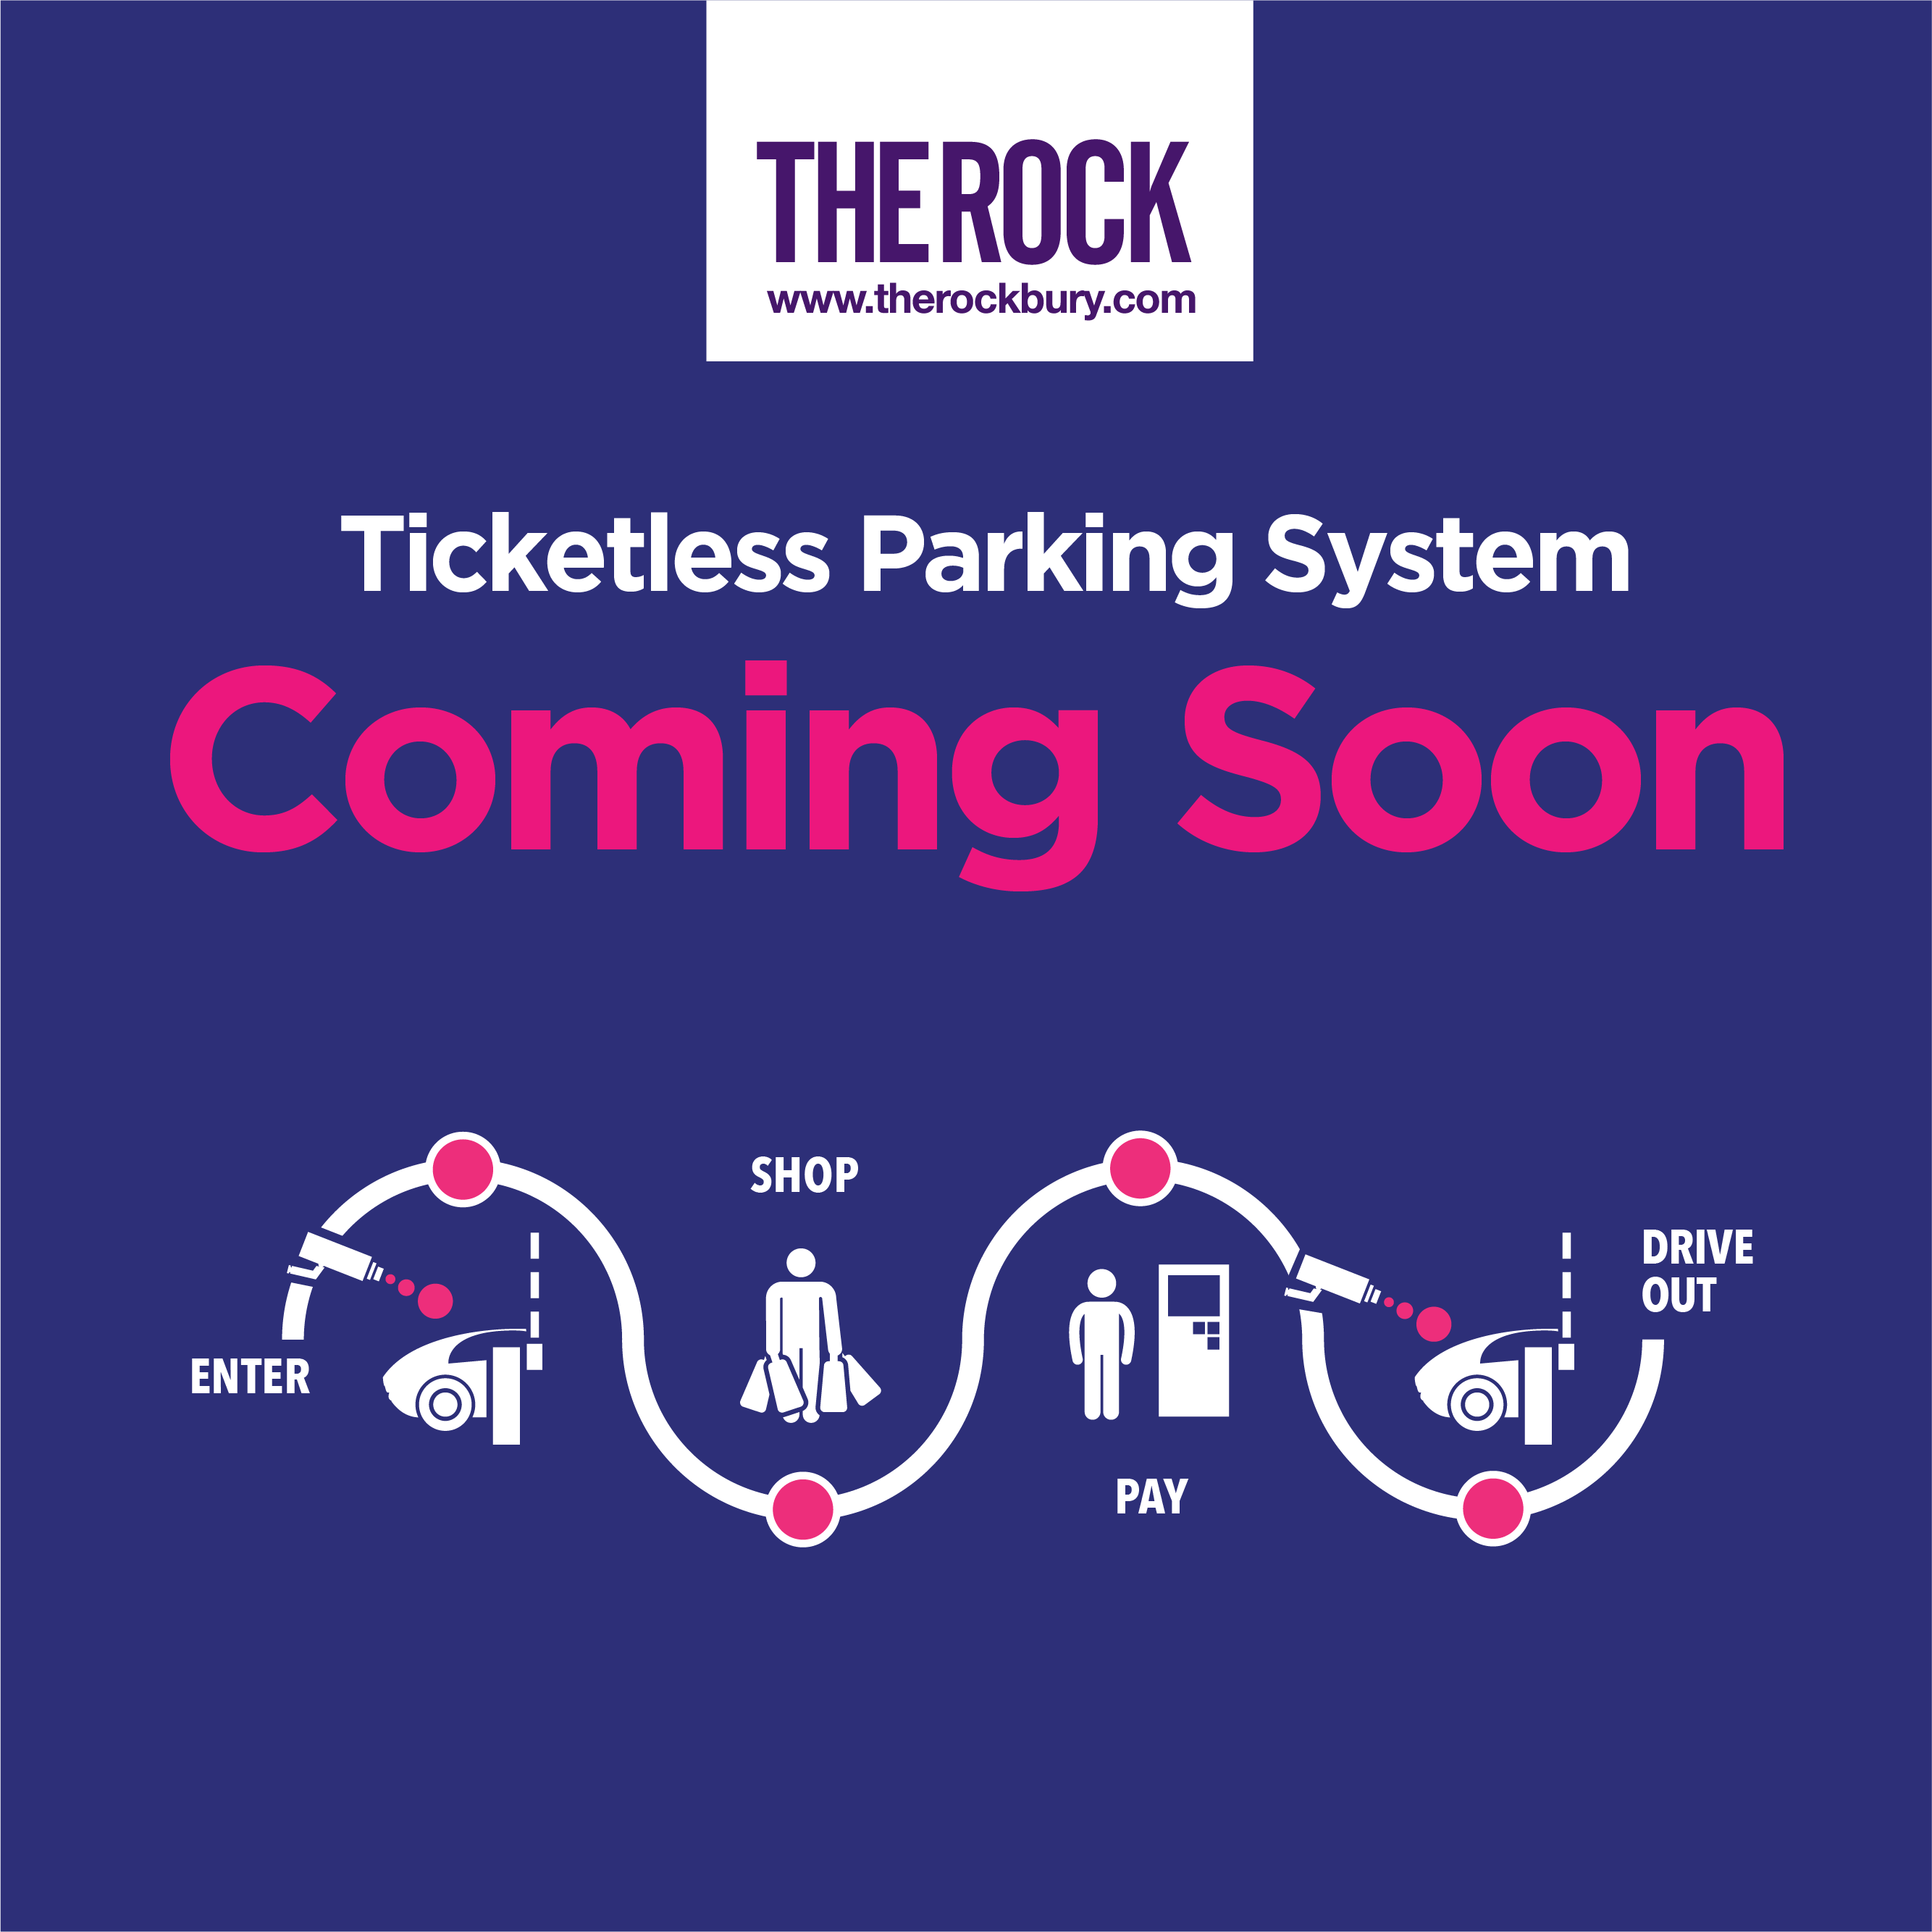 Ticketless parking system – coming soon